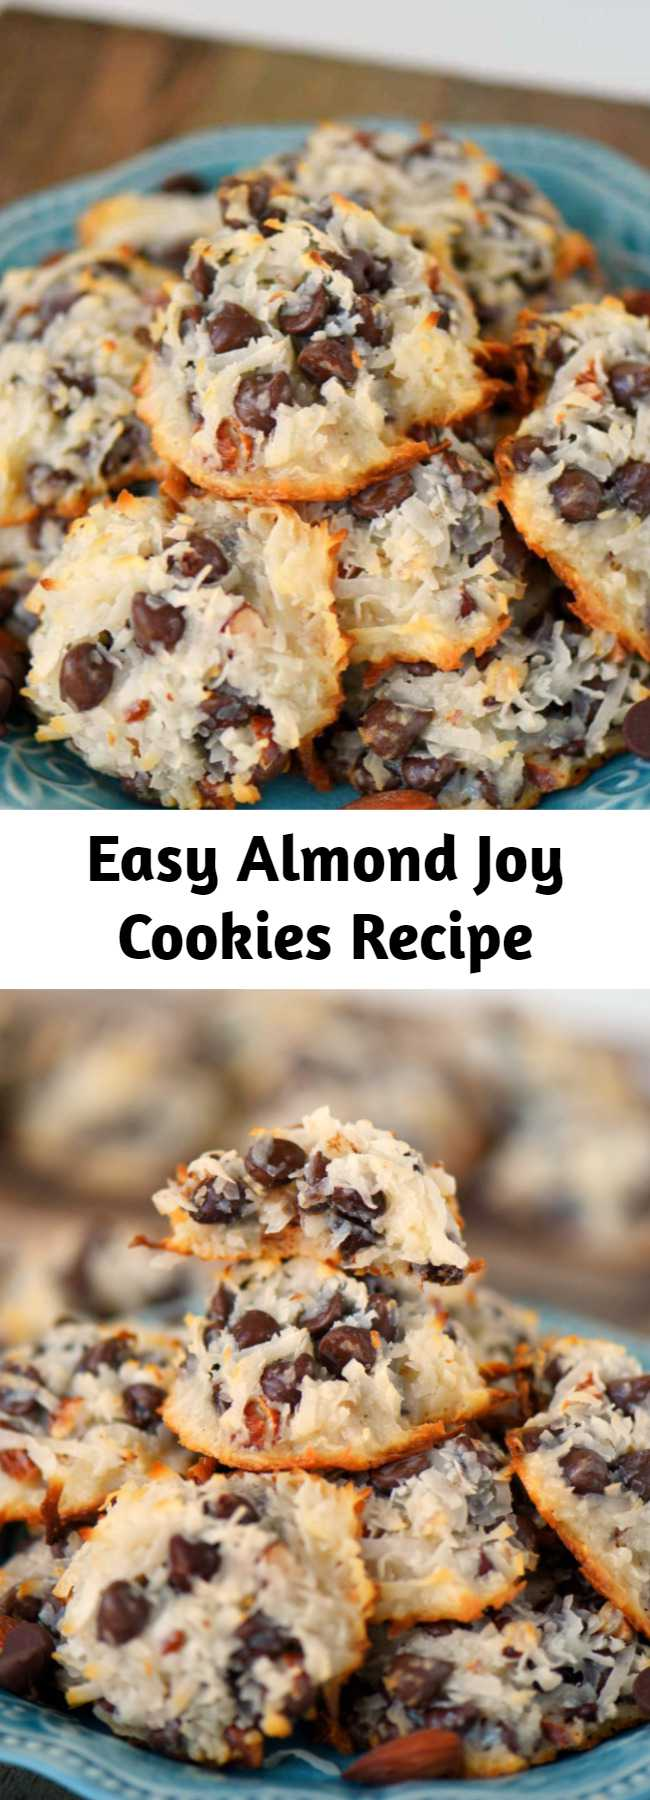 Easy Almond Joy Cookies Recipe - These easy Almond Joy Cookies take just four ingredients and don't even require a mixer! No beating, no chilling, just mix 'em up and throw 'em in the oven EASY! You're going to love these ooey gooey fabulous cookies!